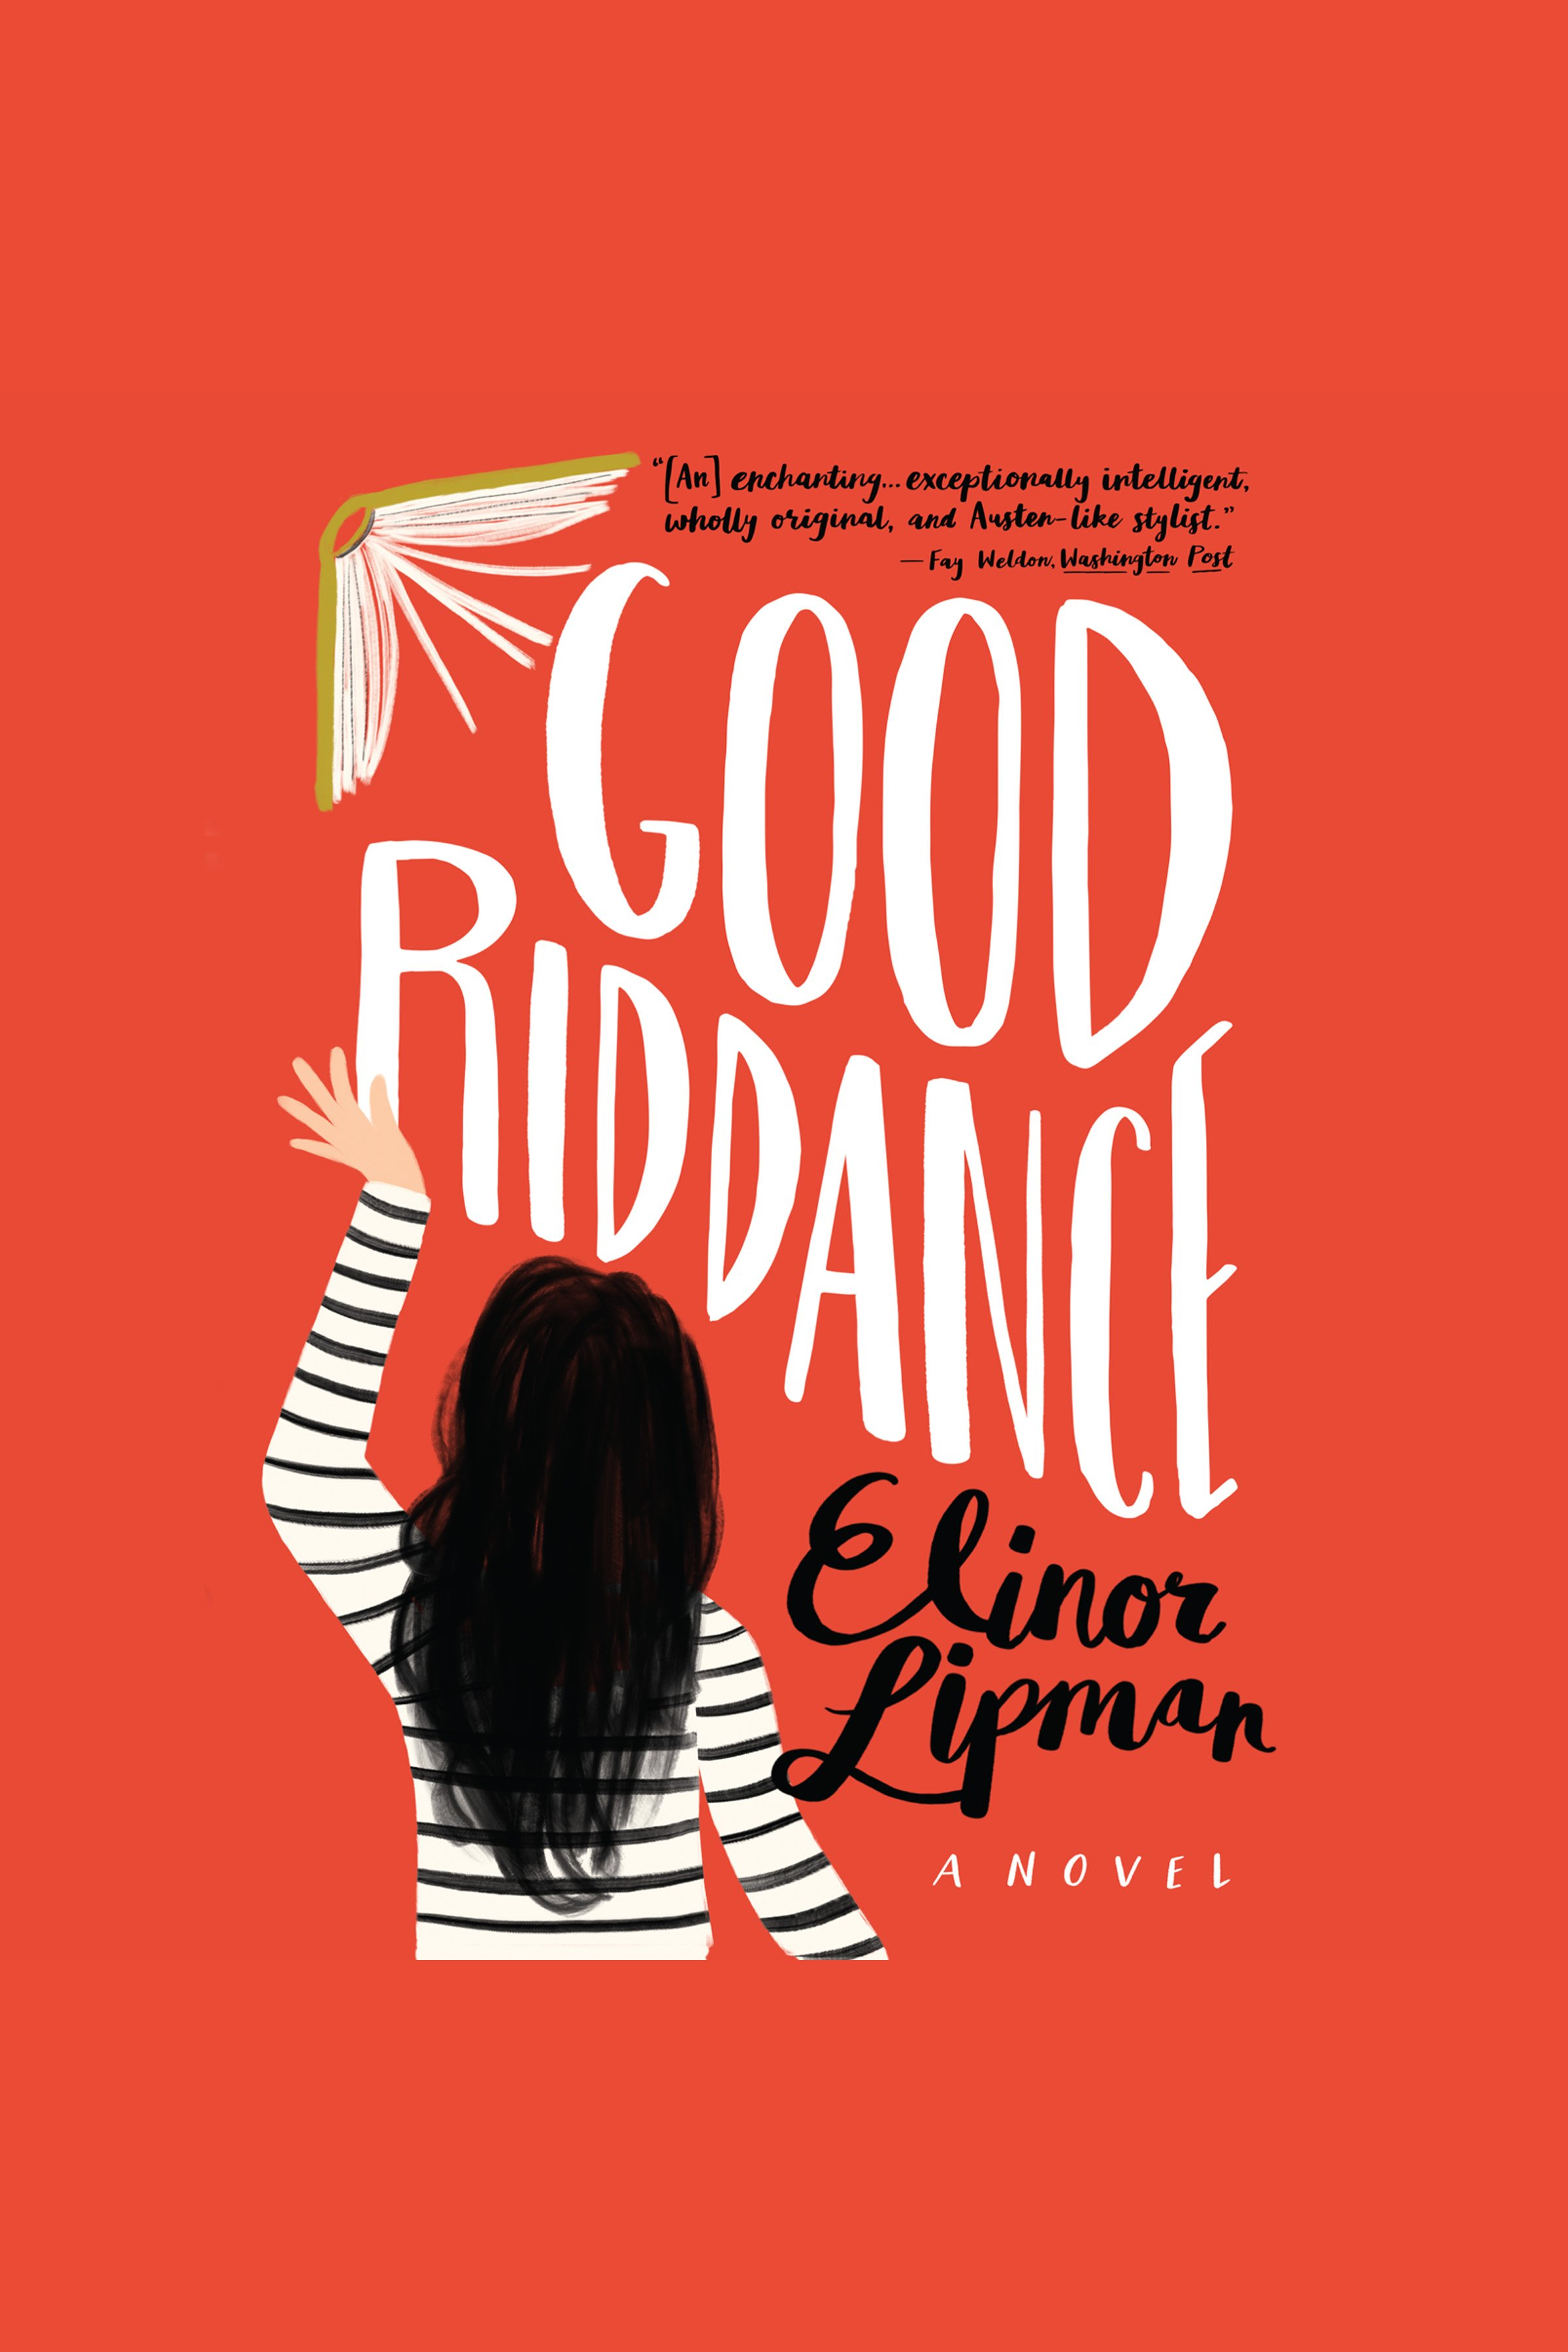 Good Riddance A Novel